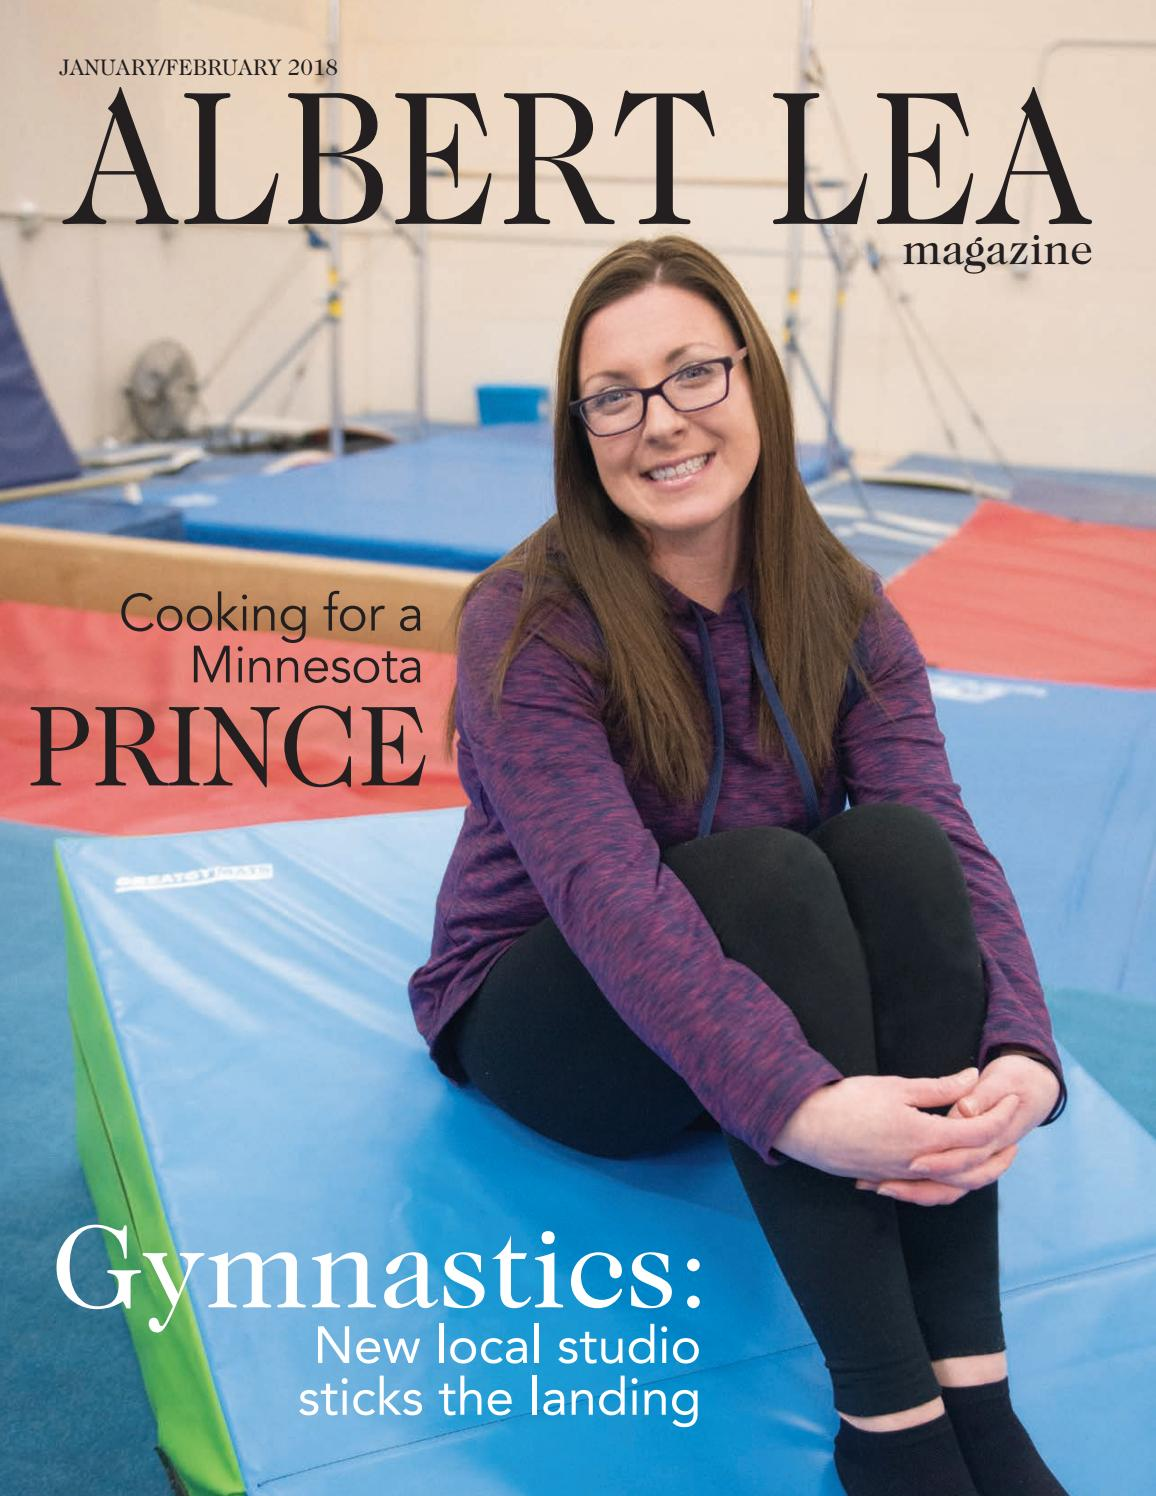 Fitness Lifestyle Wangen Albert Lea Magazine January February 2018